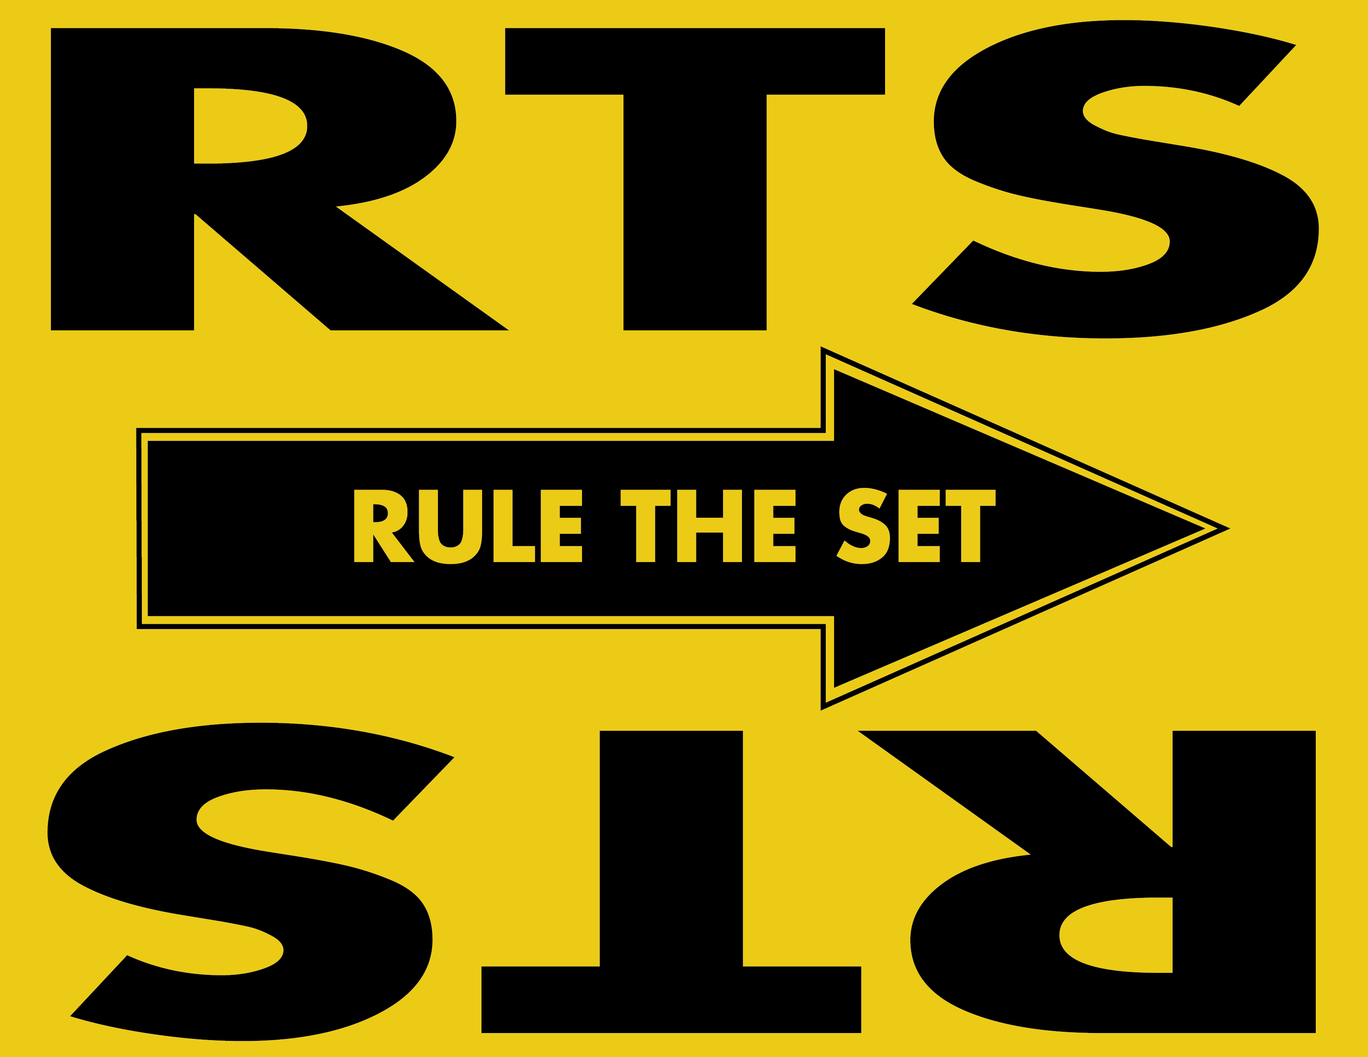 Rule The Set